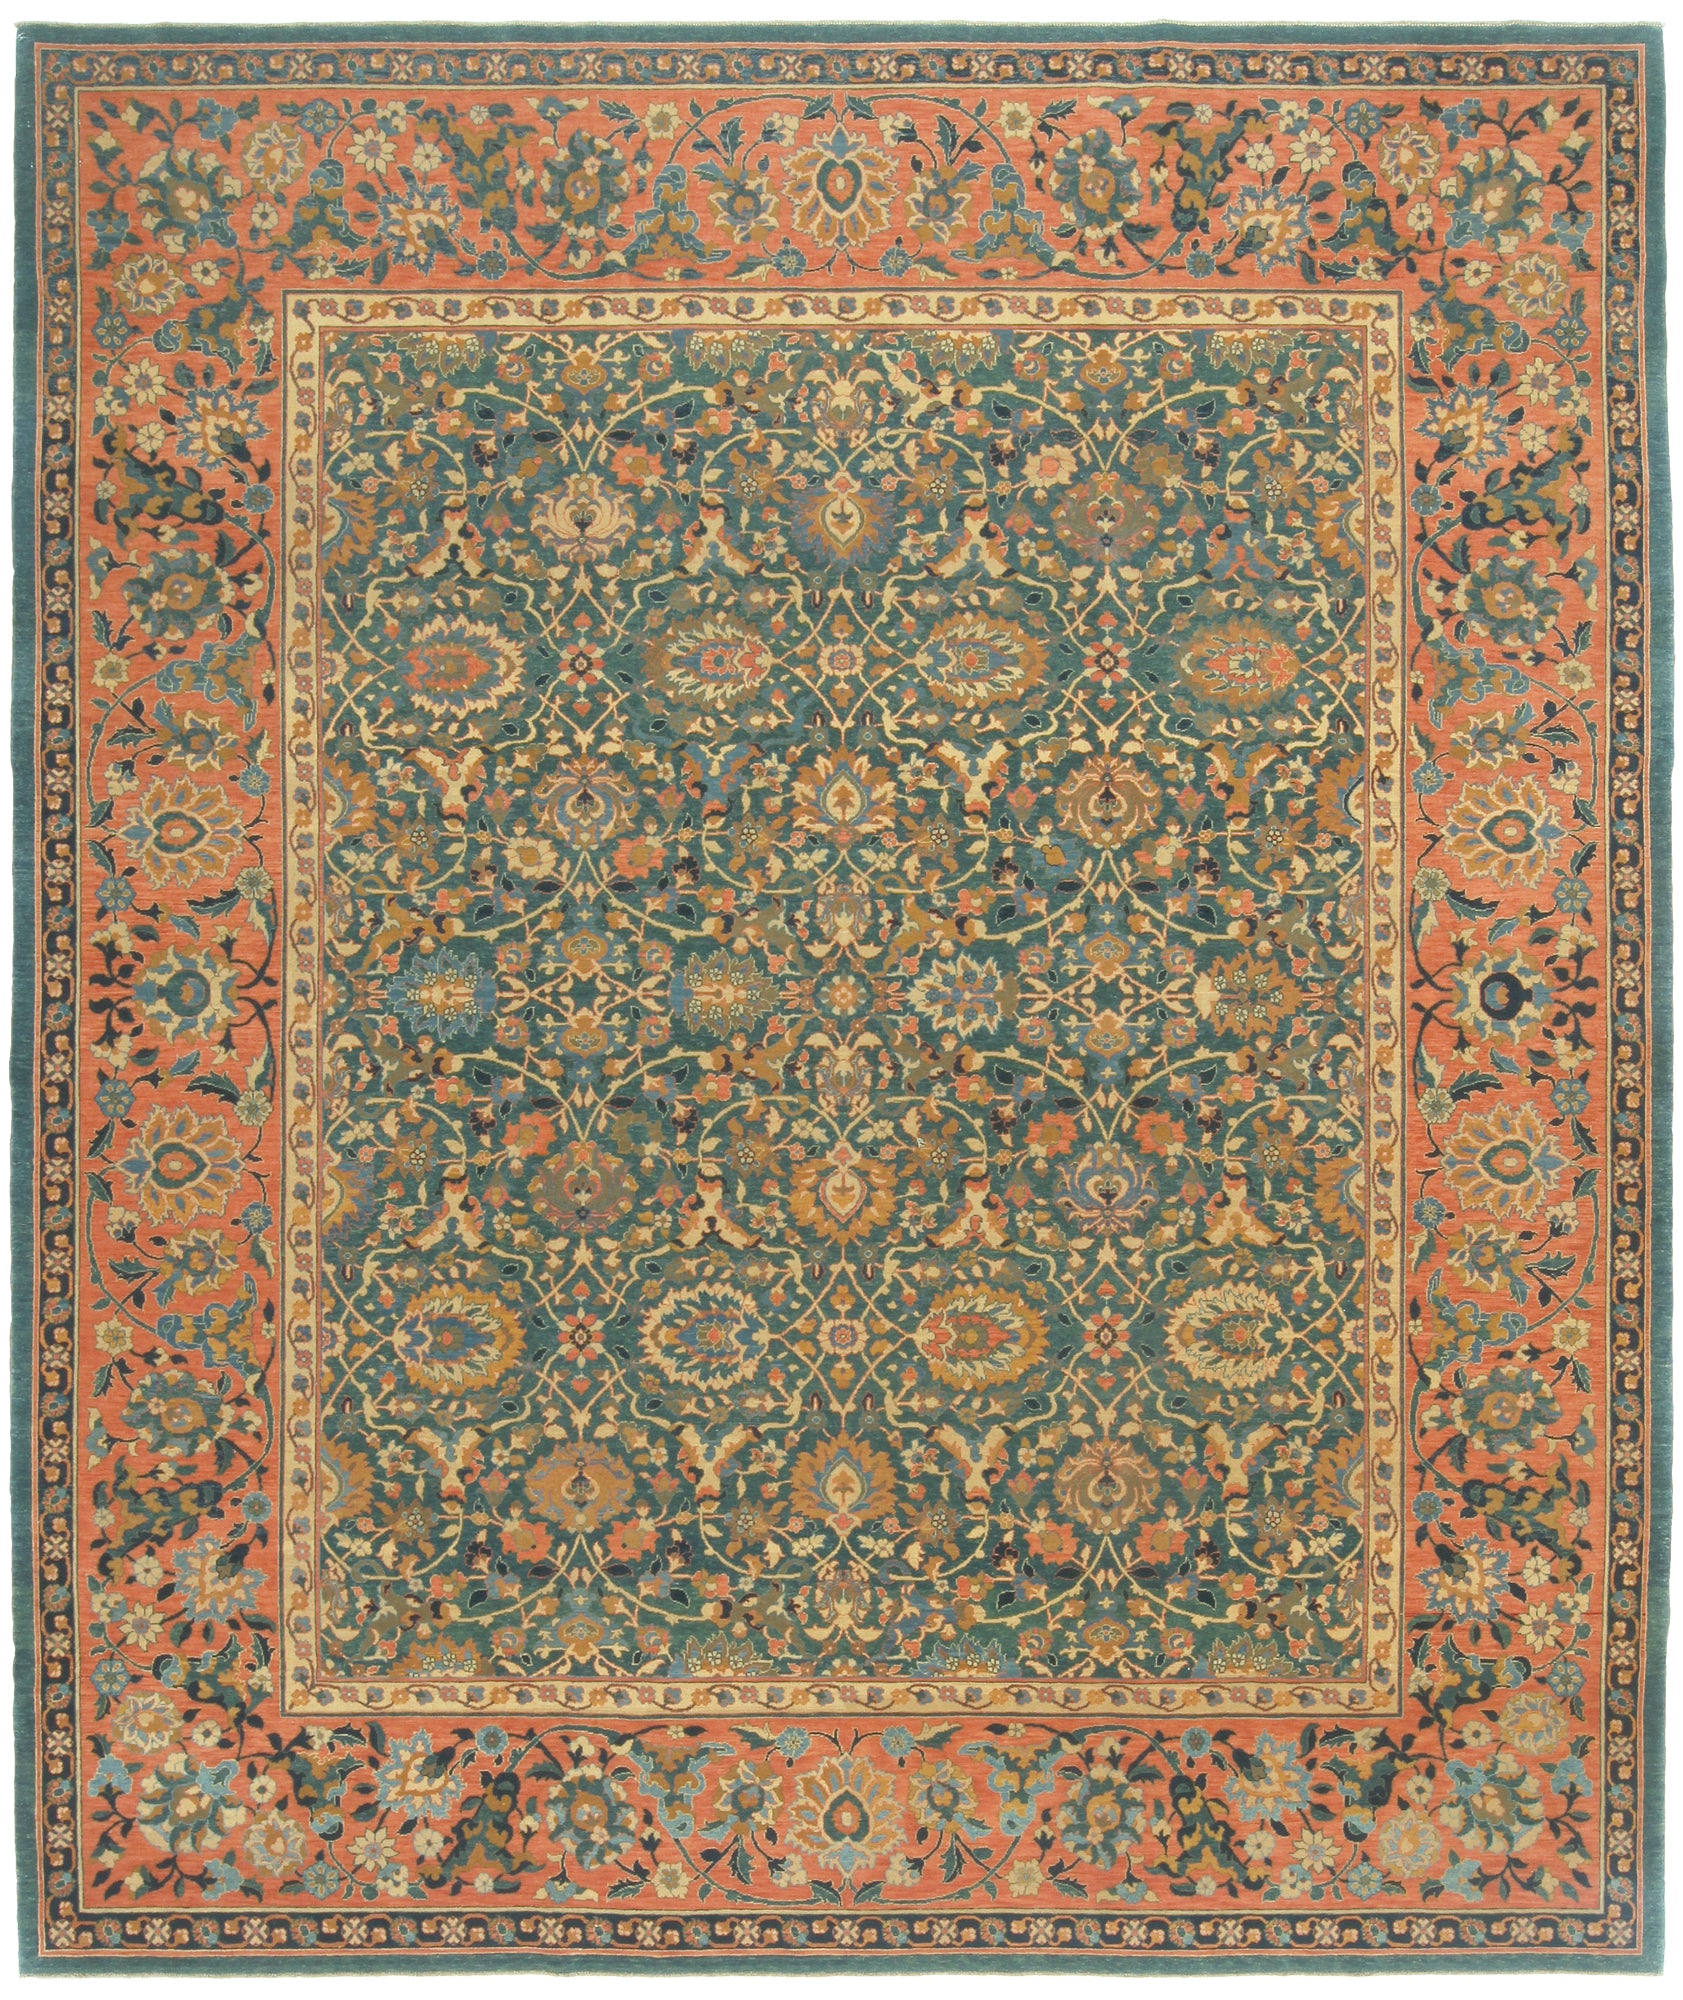 Tabriz Rug Design Turkey-Turco Persian Rug Company Inc.